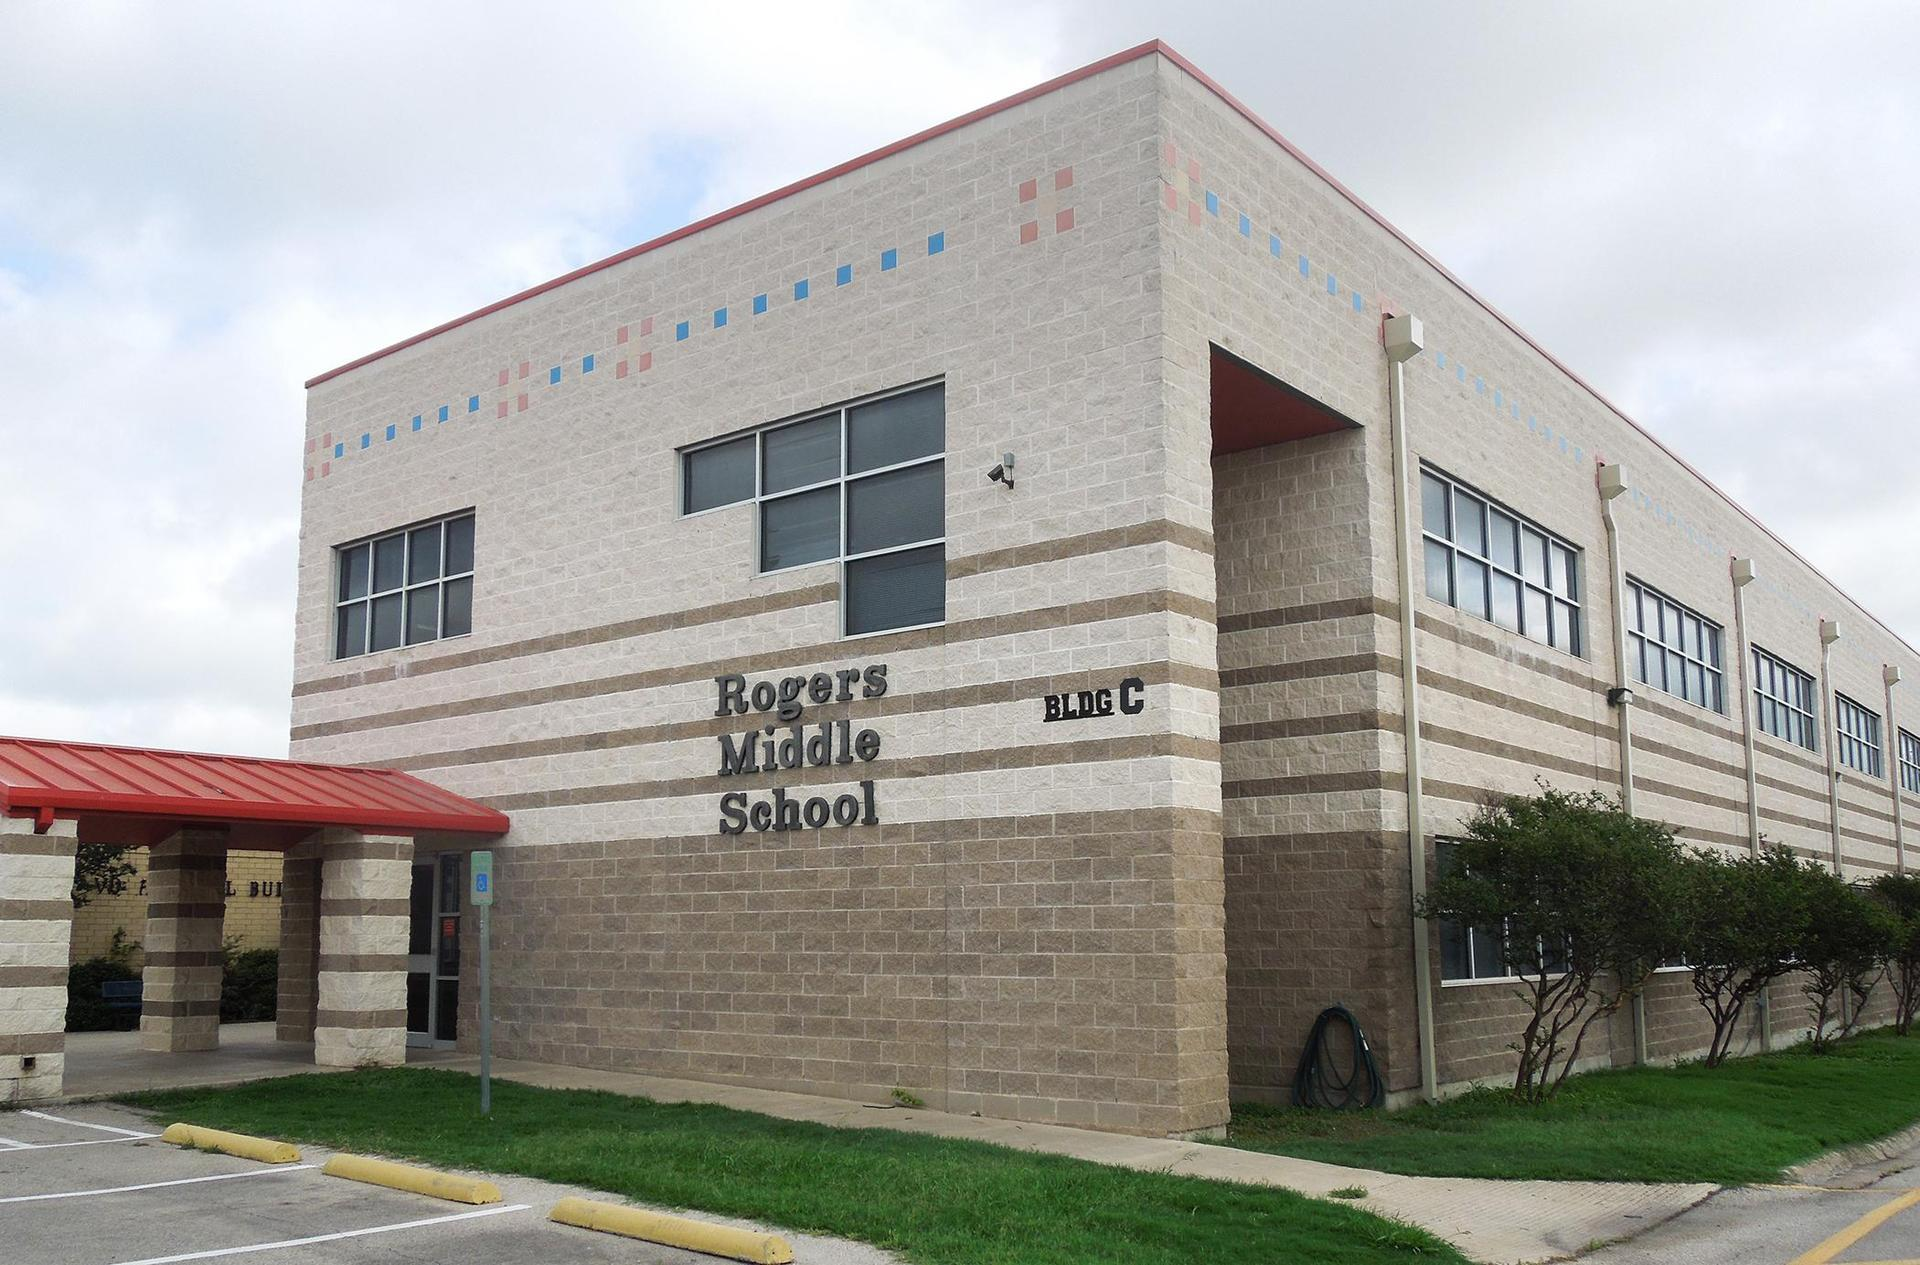 Rogers Middle School